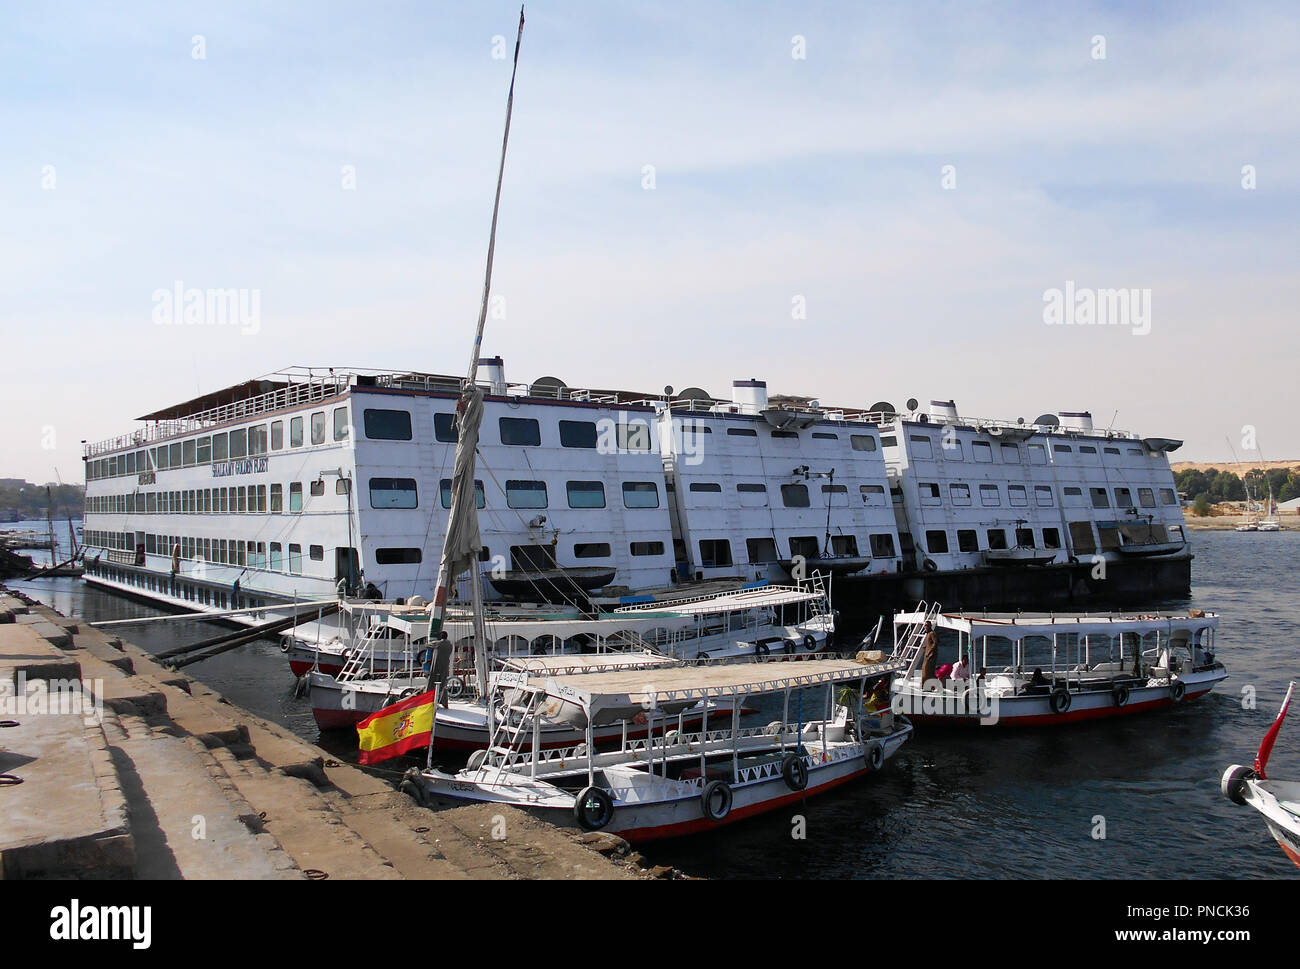 Three of the many smaller cruise ships, that cruise up and down the Nile, are seen tied up here on the quayside on the River Nile in Egypt. - Stock Image